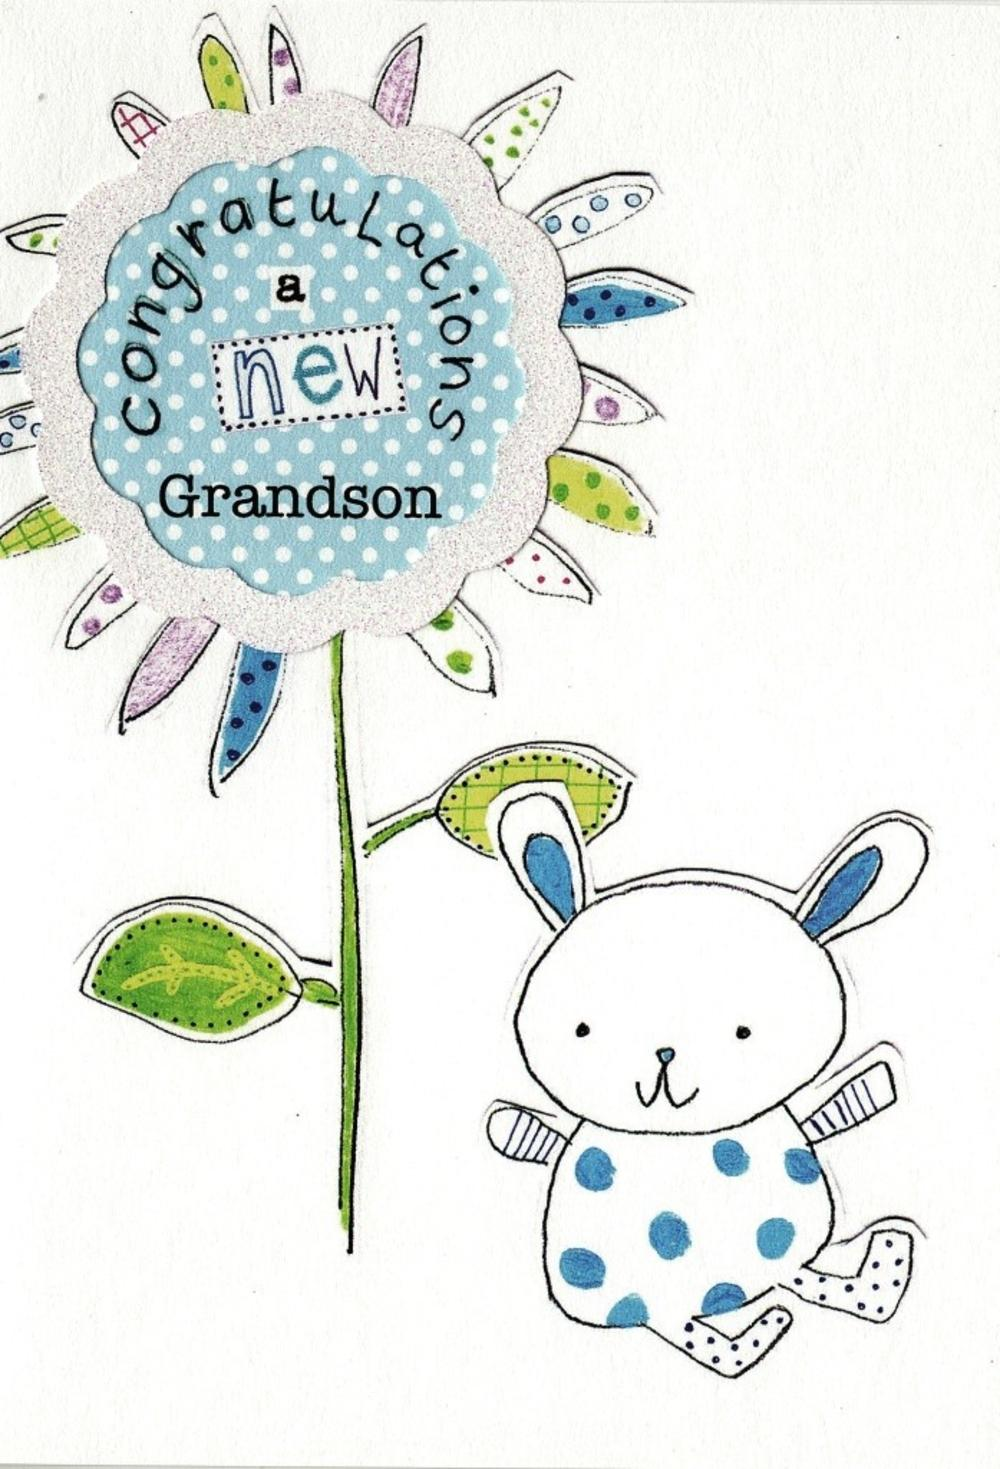 New Grandson Paper Salad Greeting Card